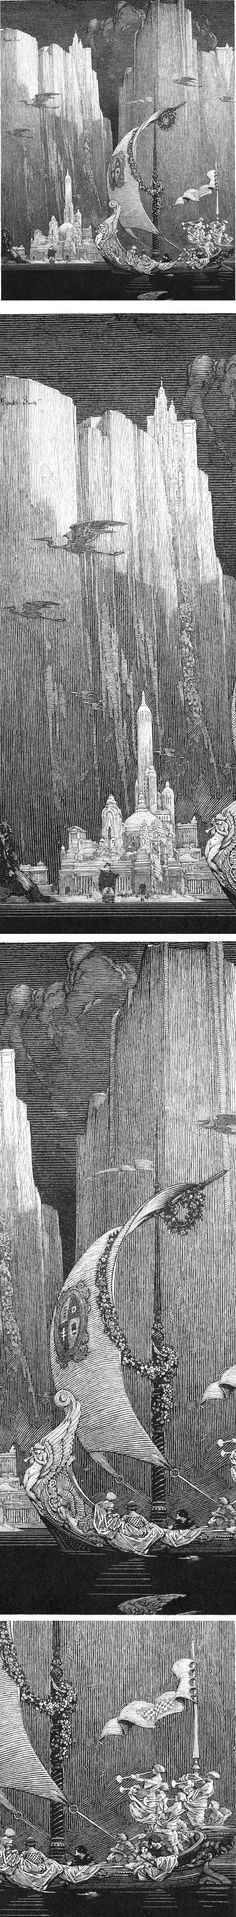 Eye Candy for Today: Franklin Booth ink drawing – Lines and Colors Black And White Drawing, Black And White Illustration, Amazing Drawings, Art Drawings, Franklin Booth, Fantasy Illustration, Ink Illustrations, Art Graphique, Wood Engraving